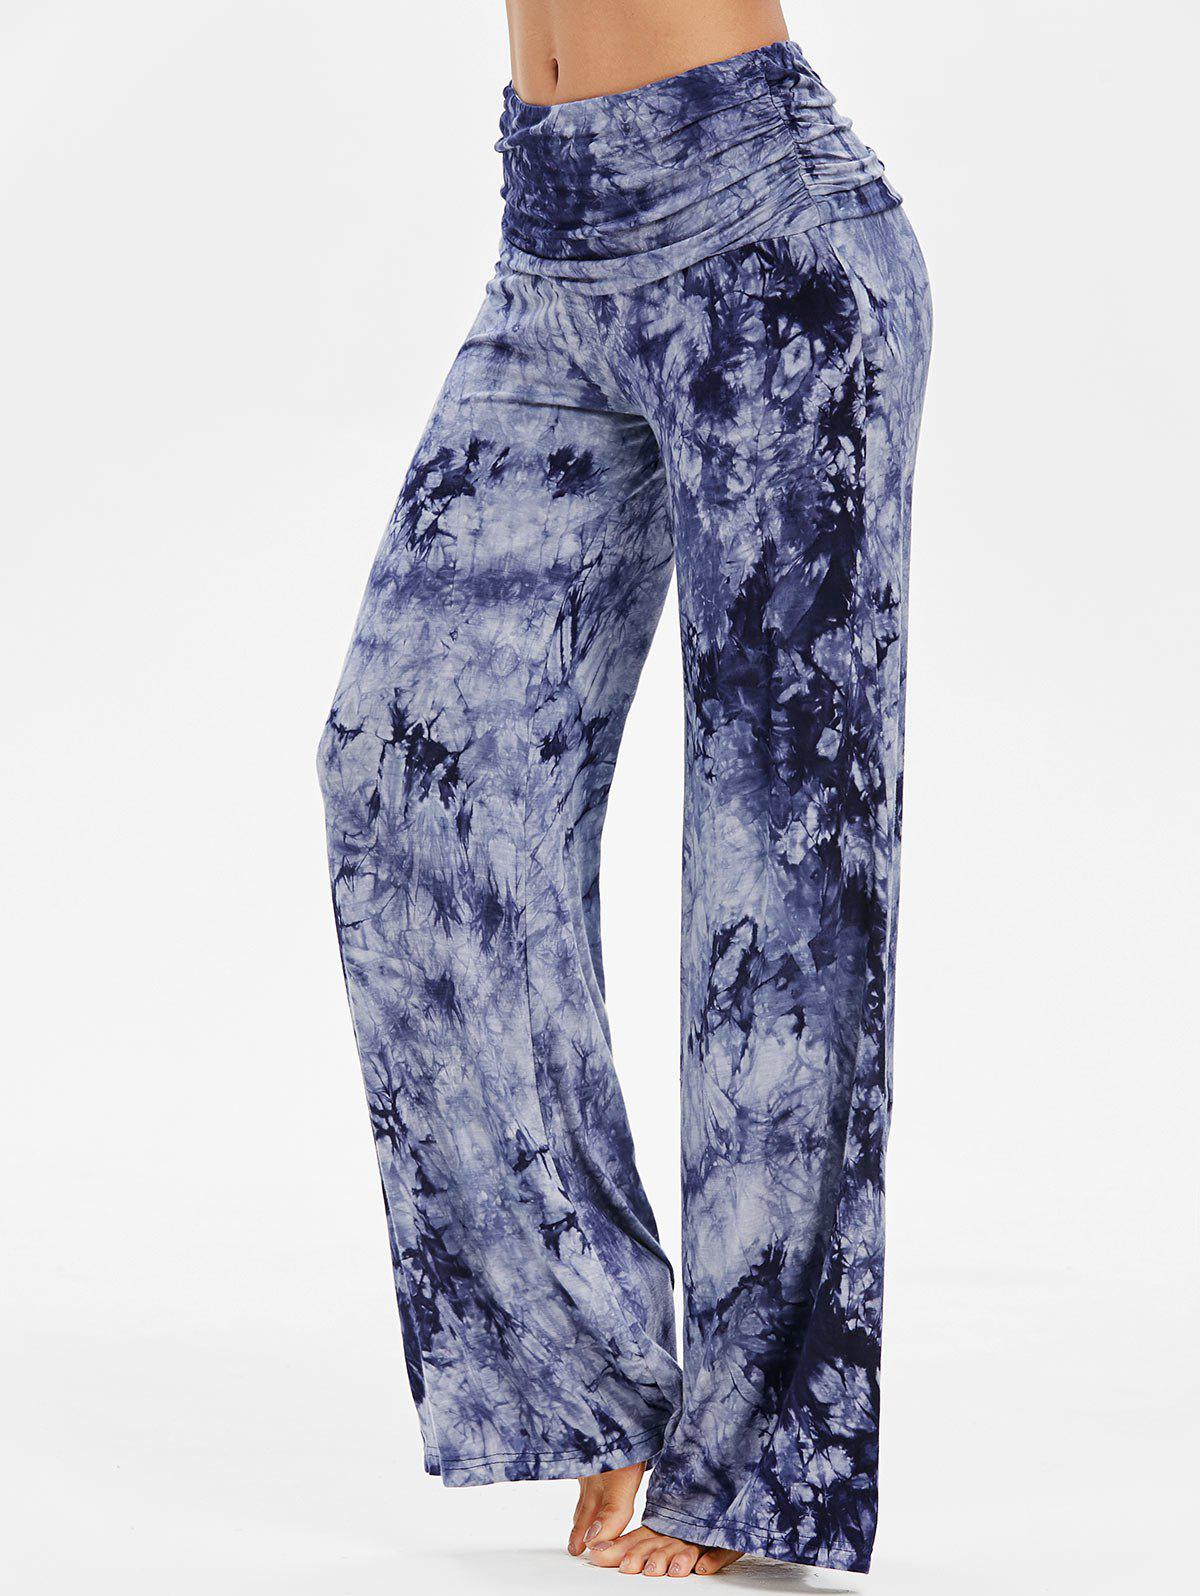 New Wide Leg Ruched Tie Dye Pants